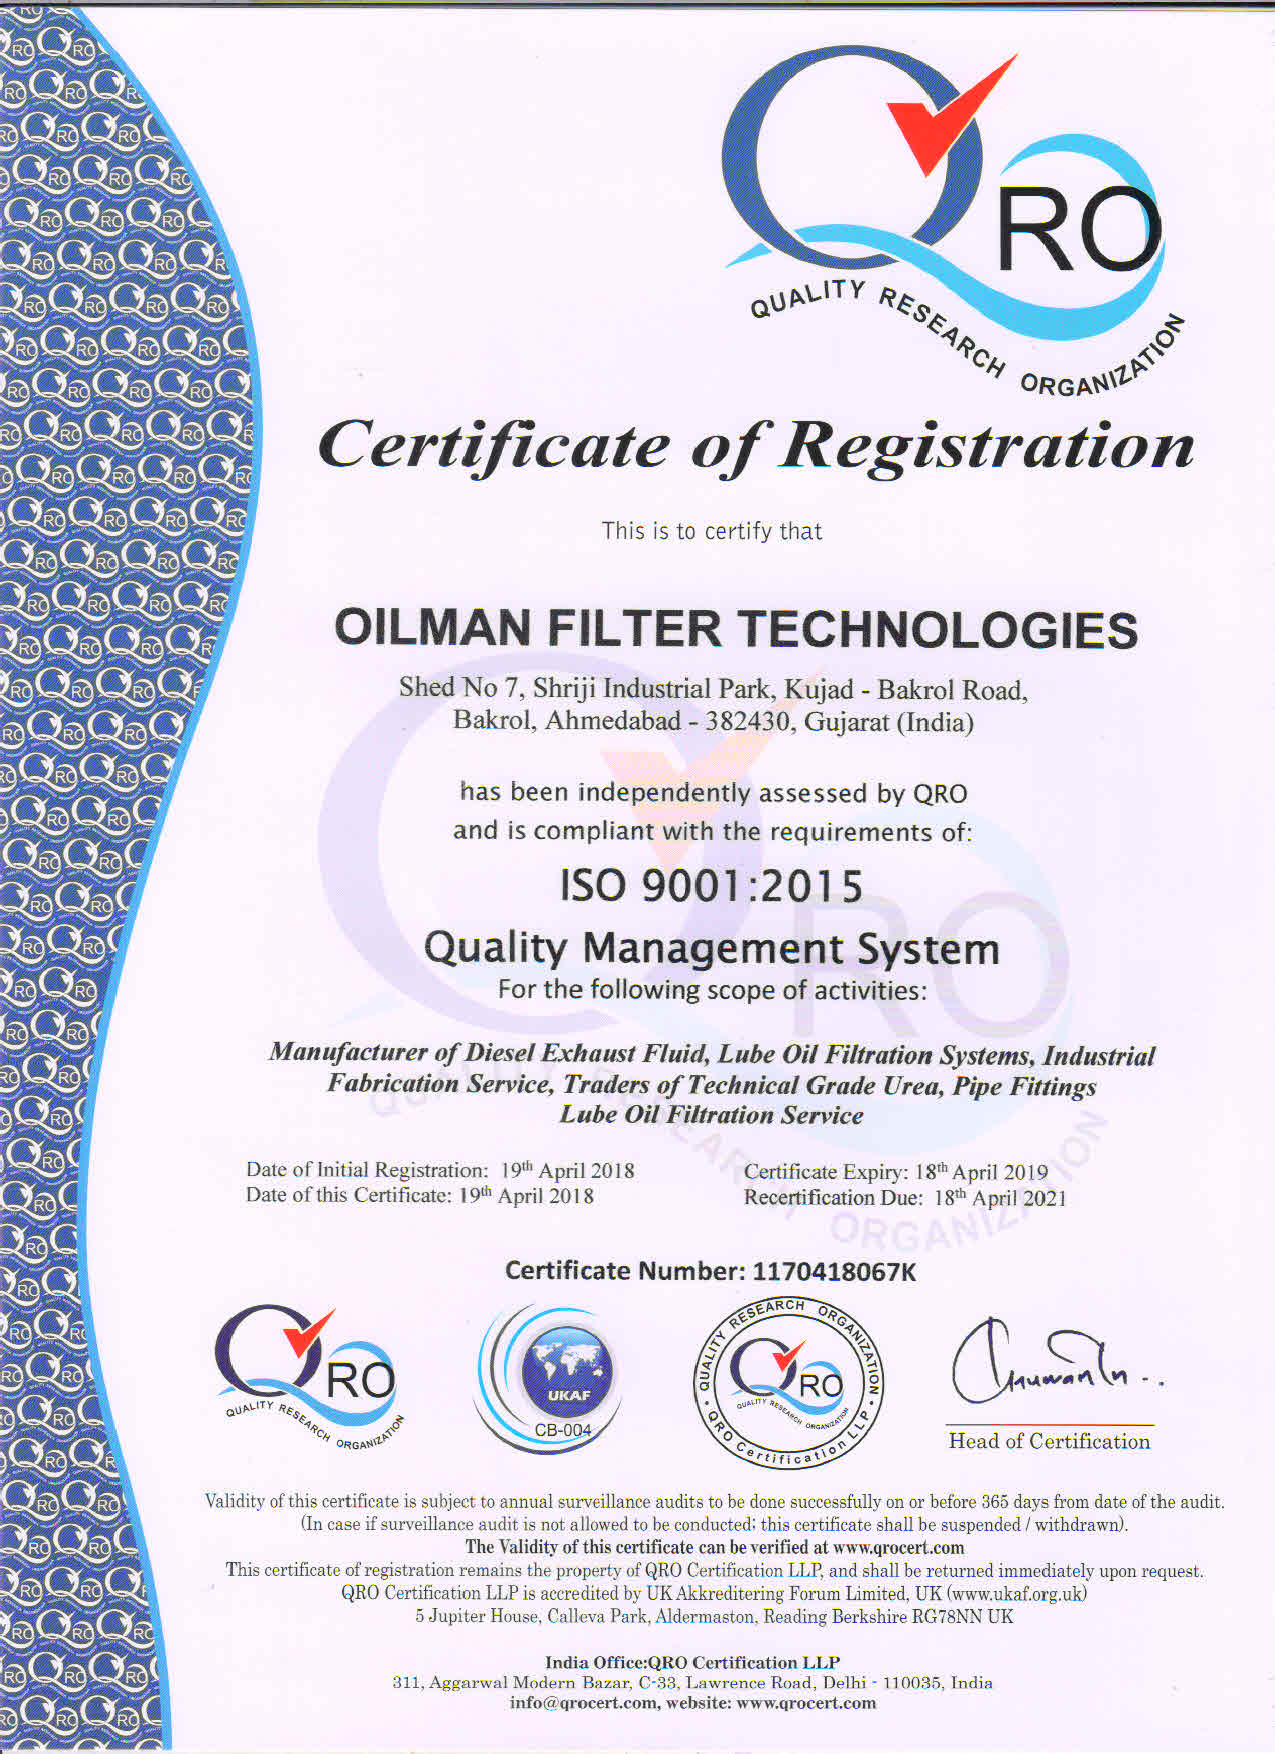 OILMAN FILTER TECHNOLOGIES QRO 9001